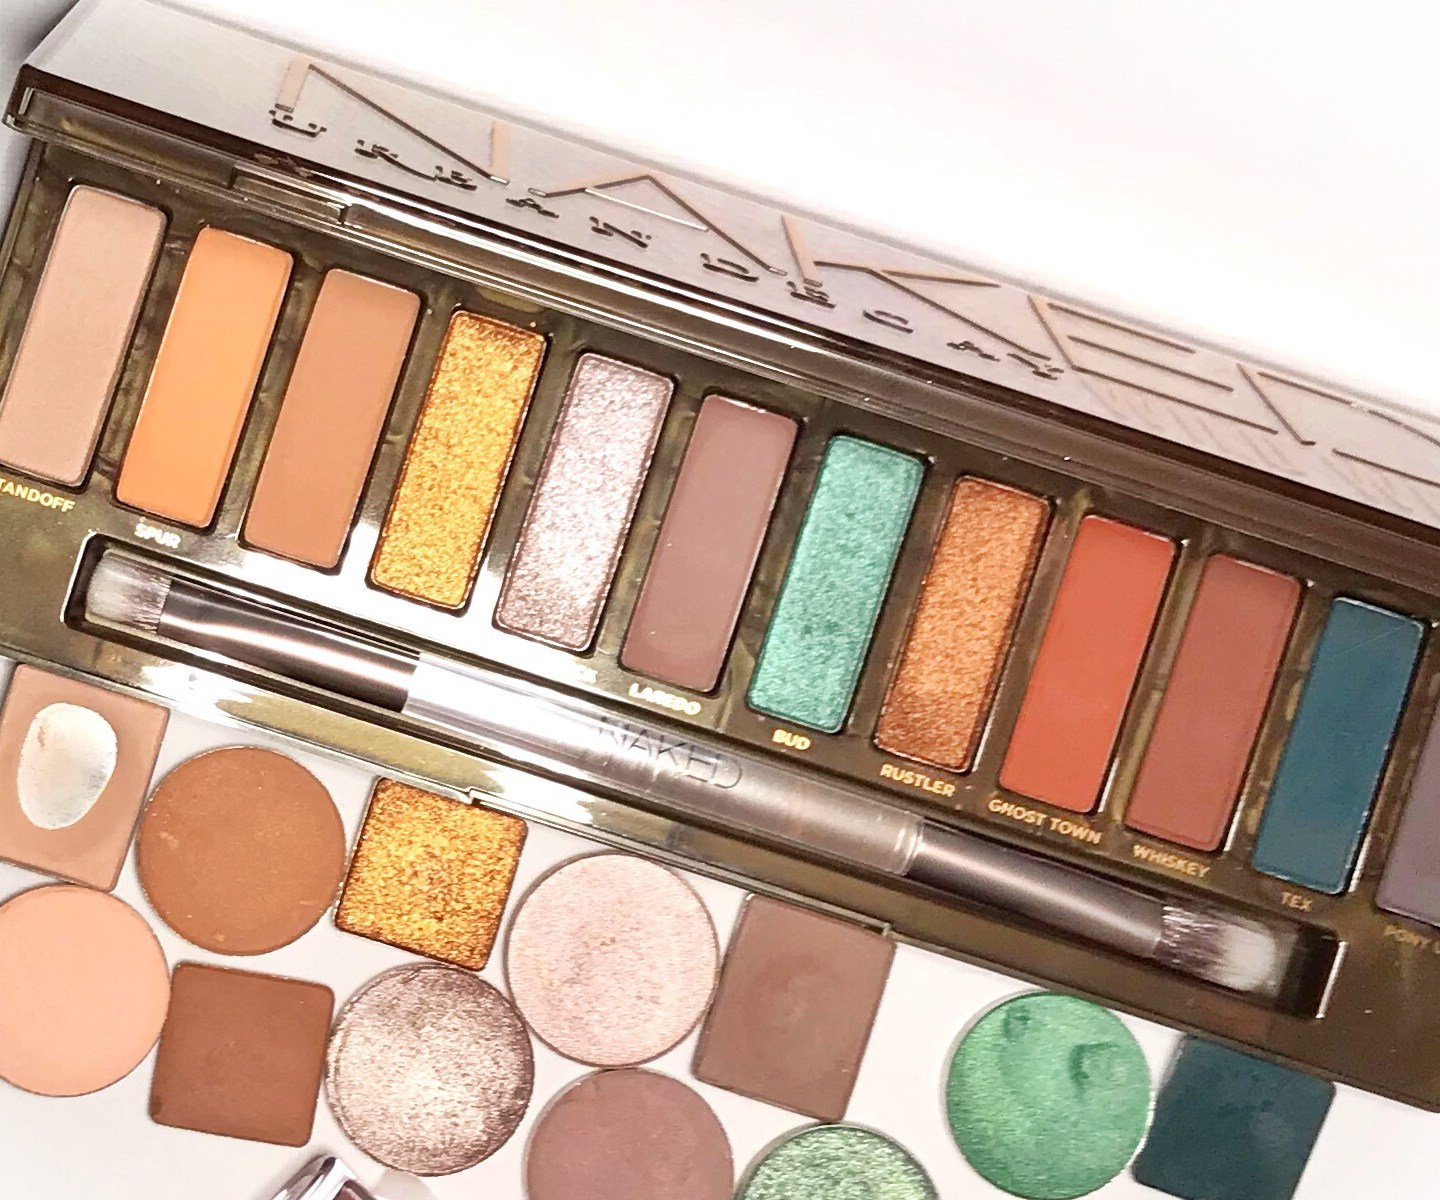 Naked Wild West Palette by Urban Decay – Swatches, Dupes, and Initial Thoughts